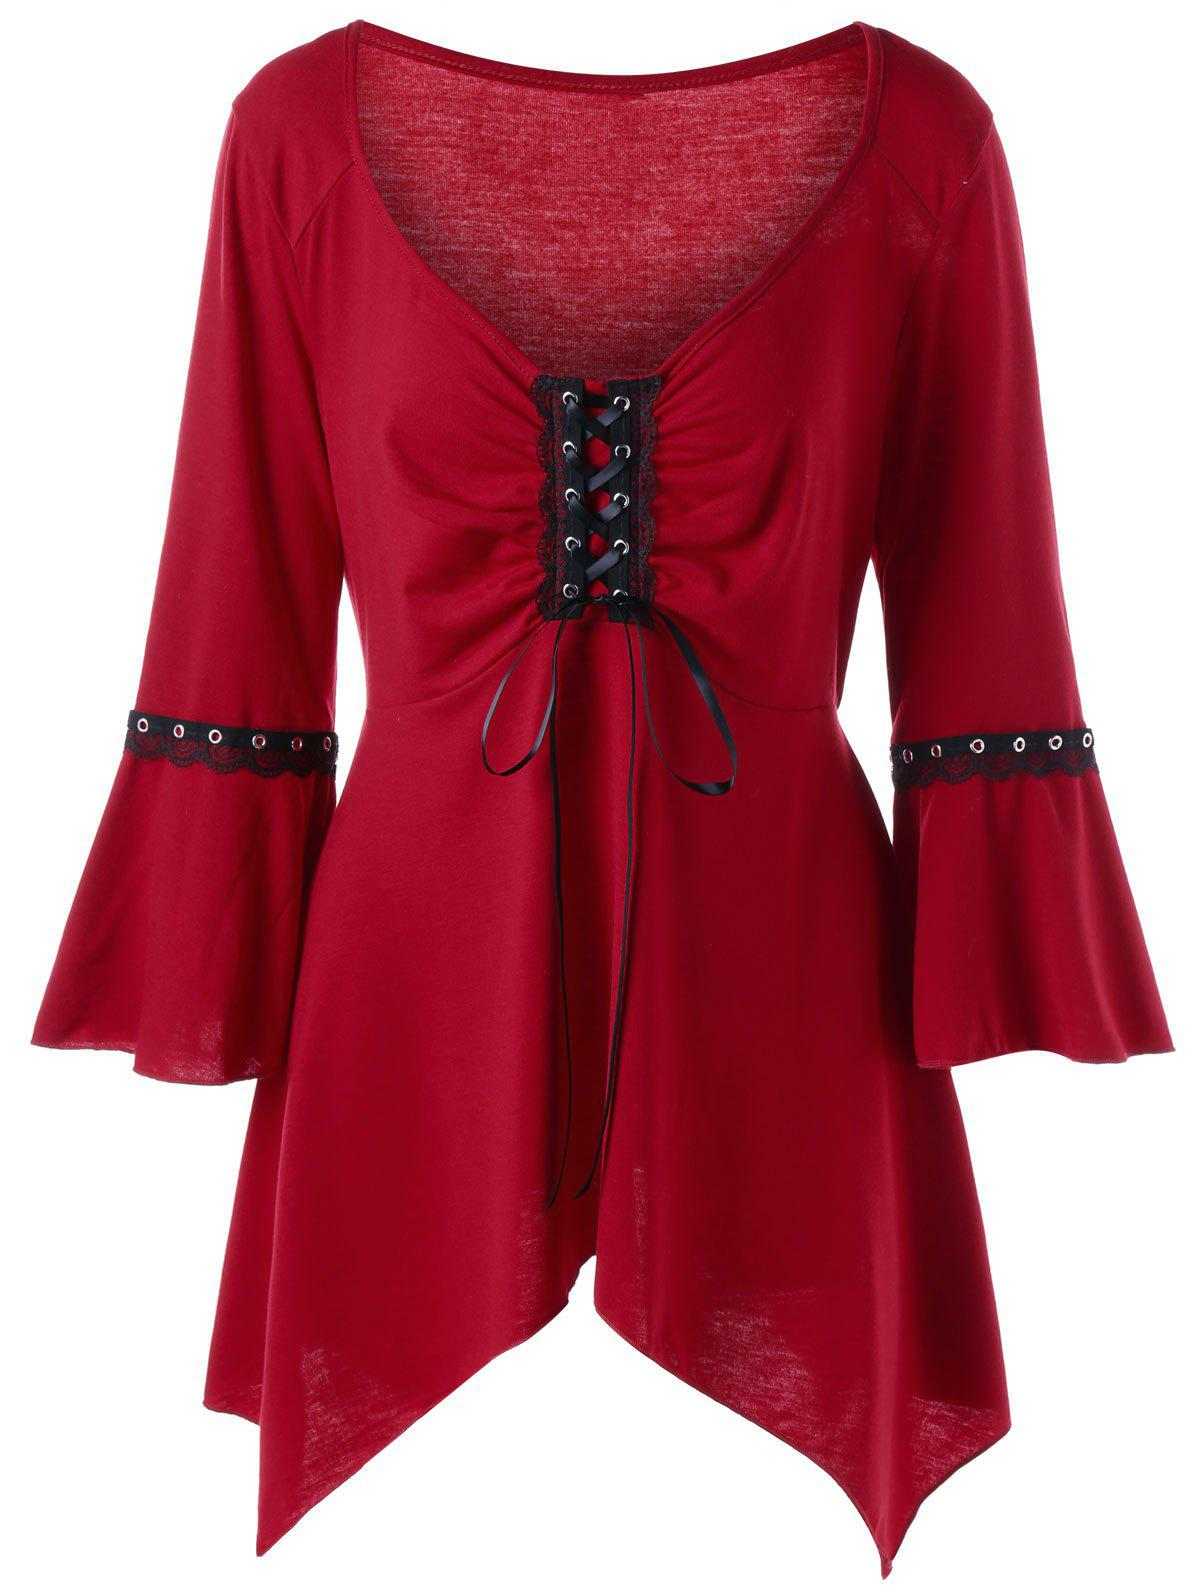 Plus Size Flare Sleeve Lace Up TeeWOMEN<br><br>Size: 4XL; Color: WINE RED; Material: Polyester,Spandex; Shirt Length: Regular; Sleeve Length: Three Quarter; Collar: V-Neck; Style: Gothic; Season: Fall,Spring,Summer; Embellishment: Lace; Pattern Type: Solid; Weight: 0.3000kg; Package Contents: 1 x T-shirt;